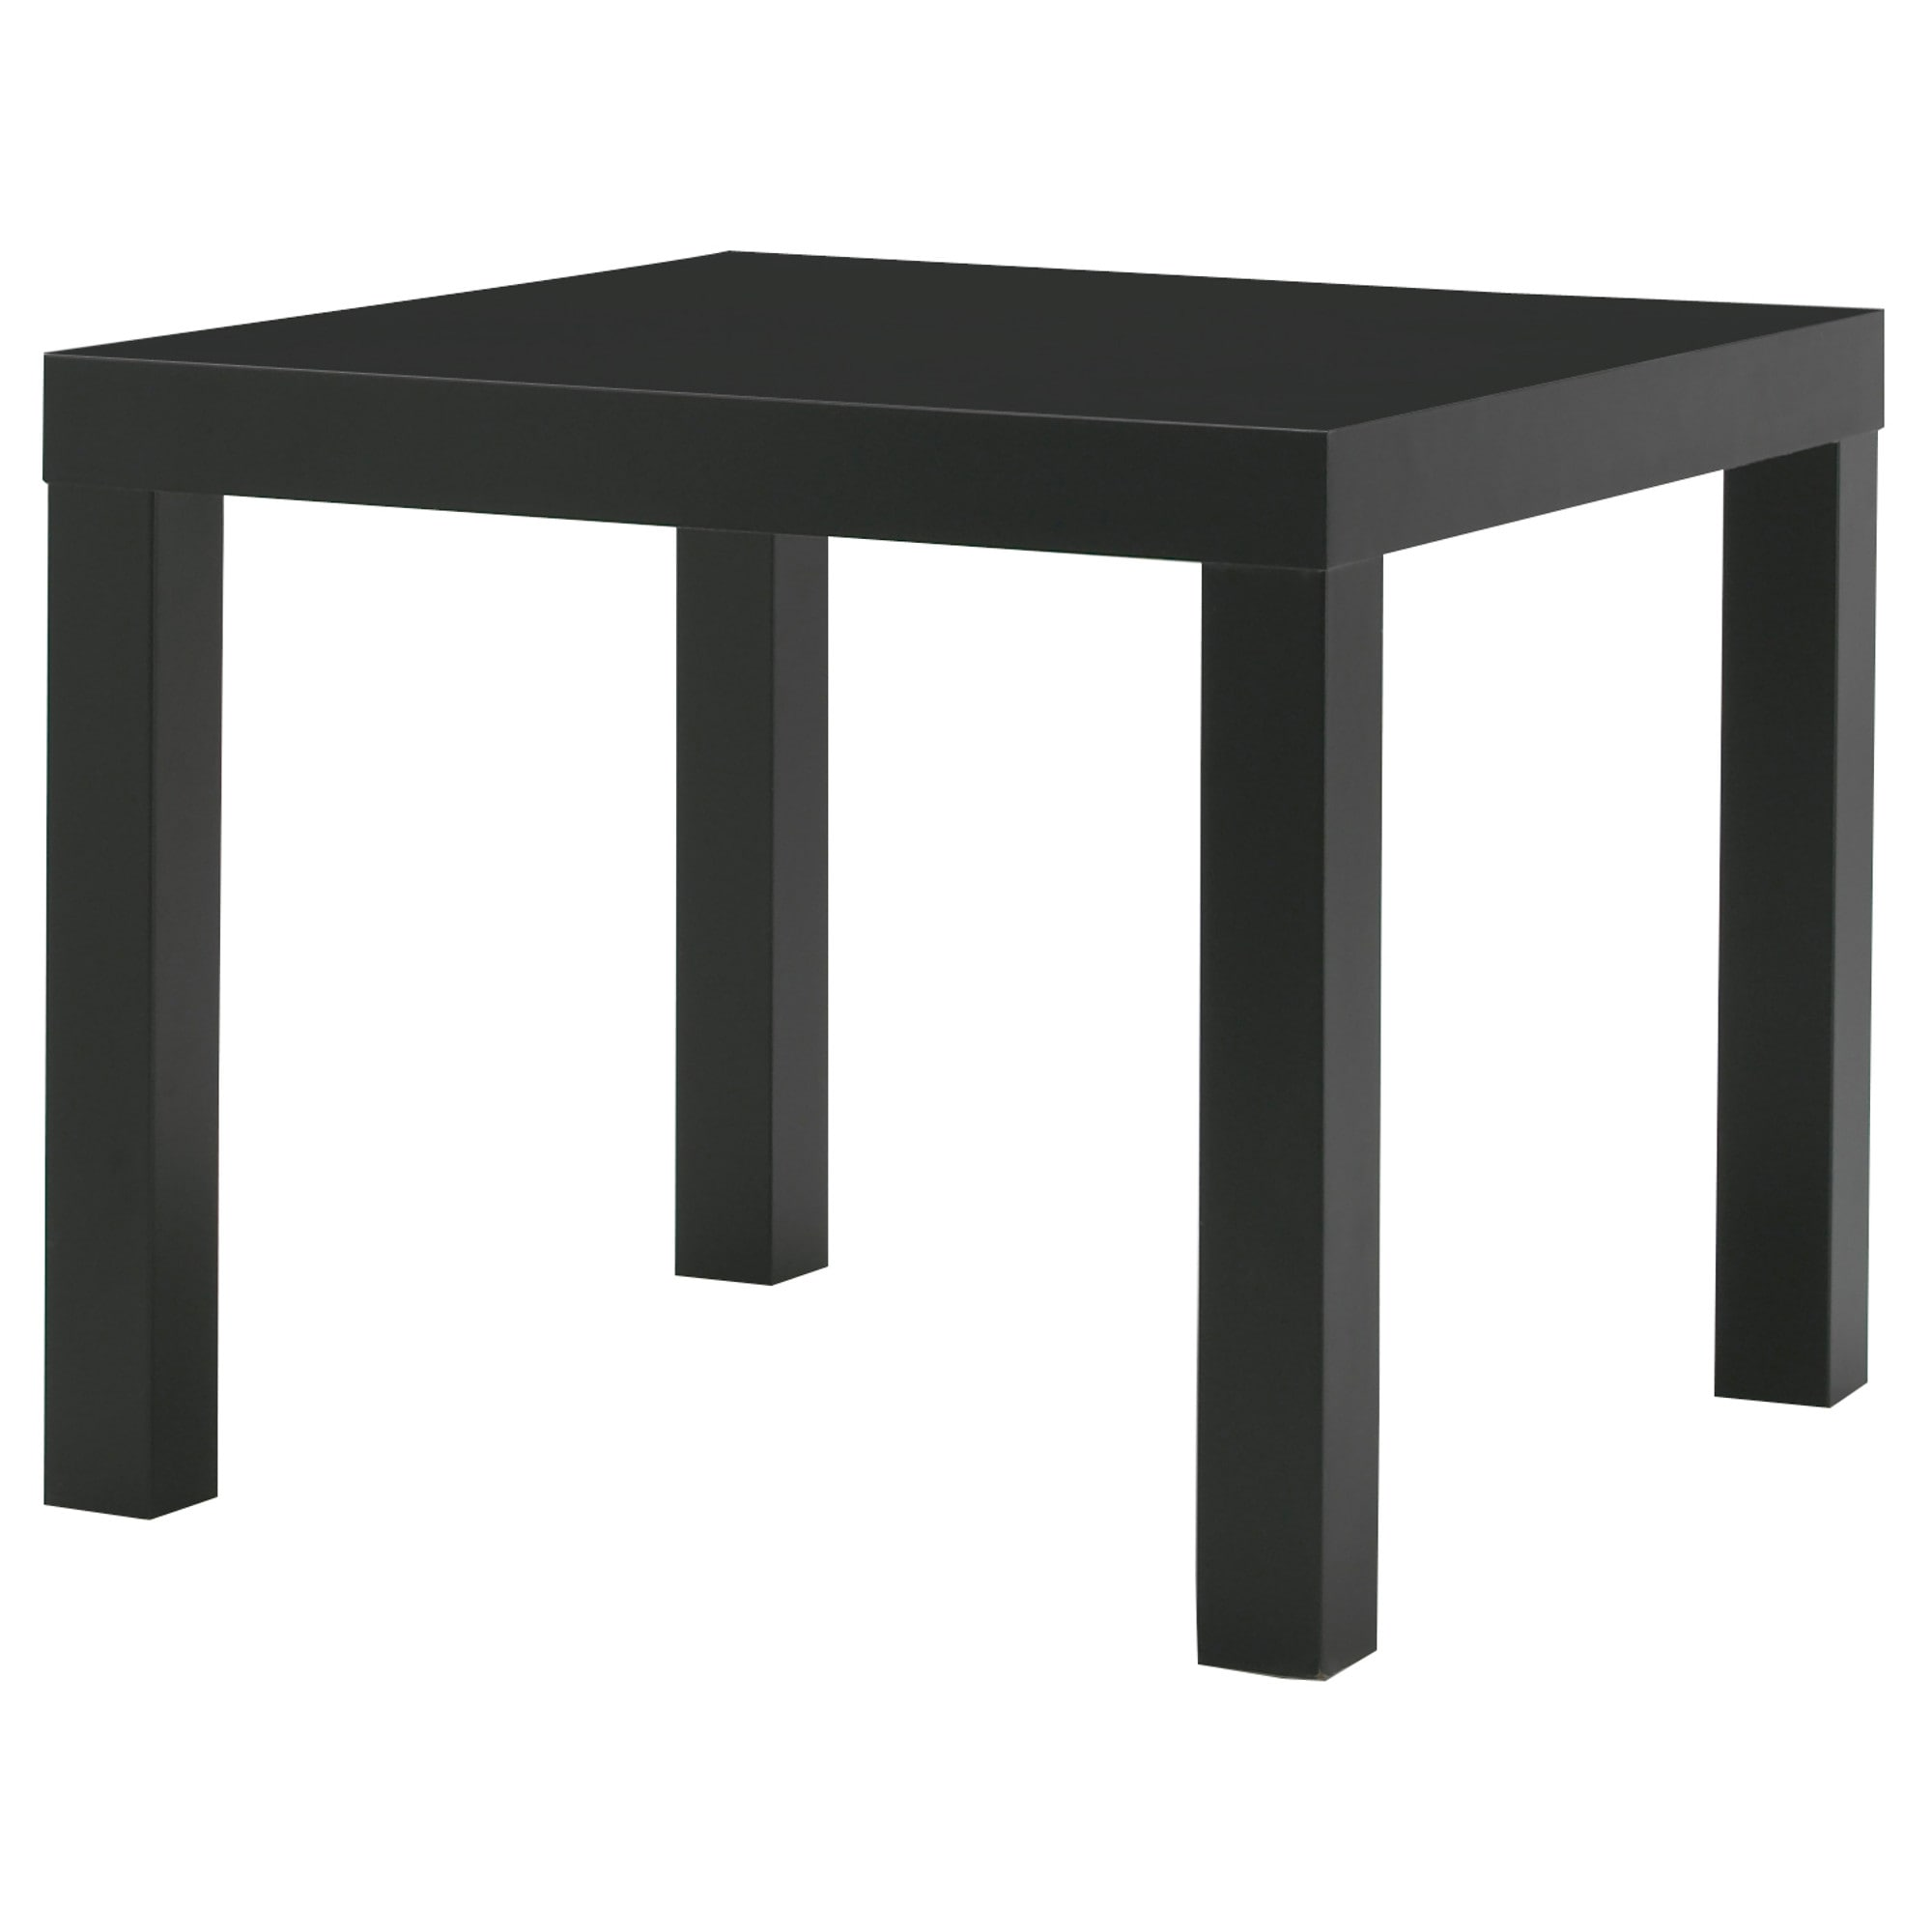 Populaire Coffee Tables & Side Tables - IKEA YH69